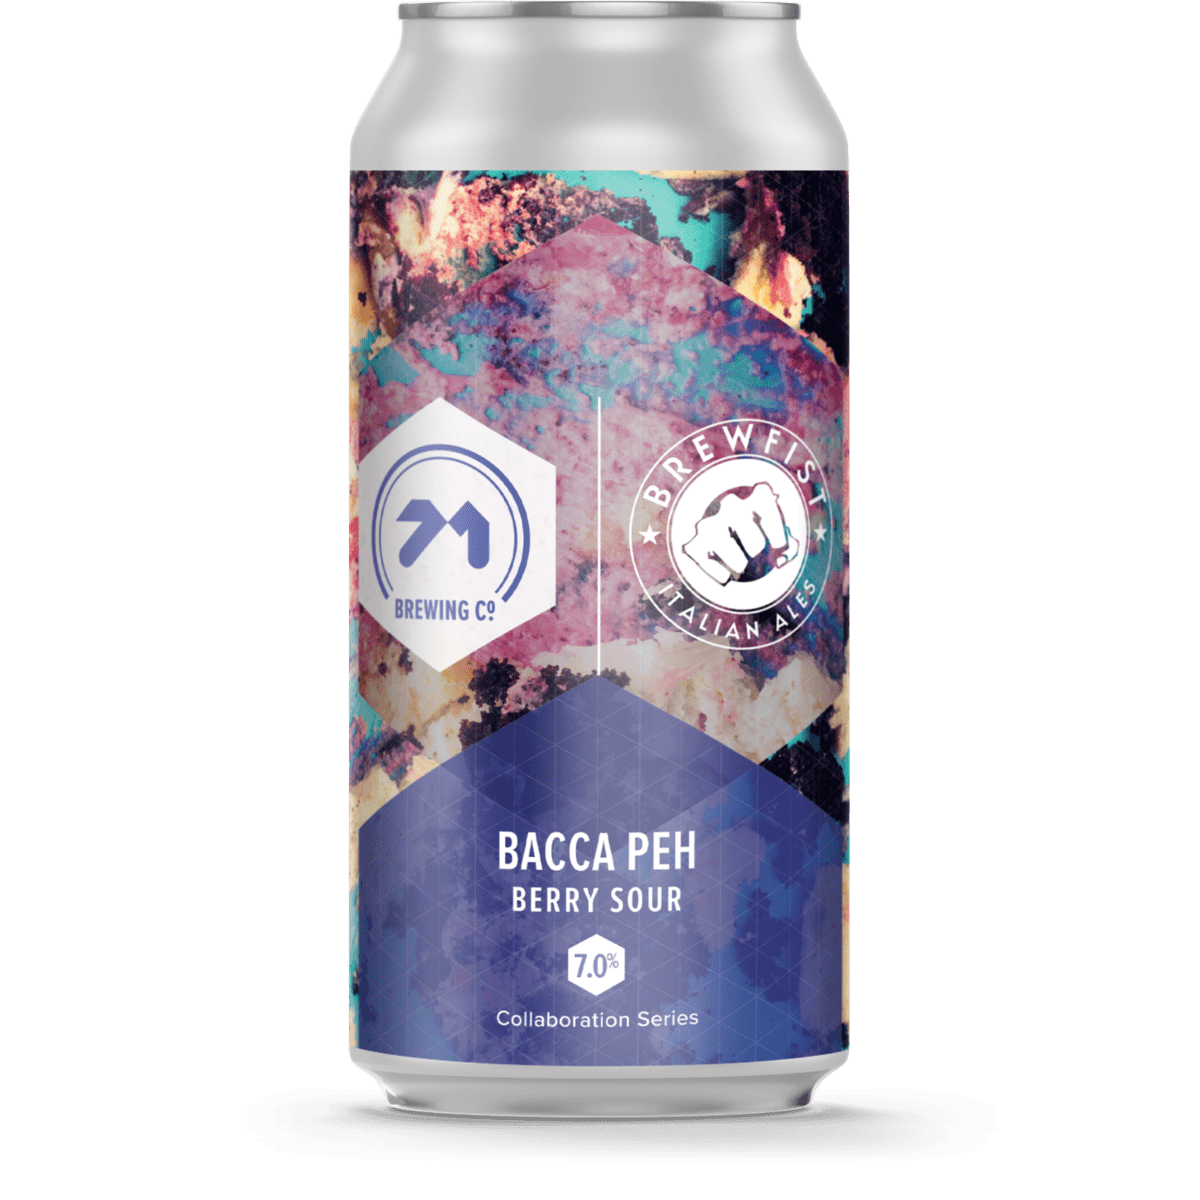 71 Brewing: Bacca Peh (W/Brewfist)